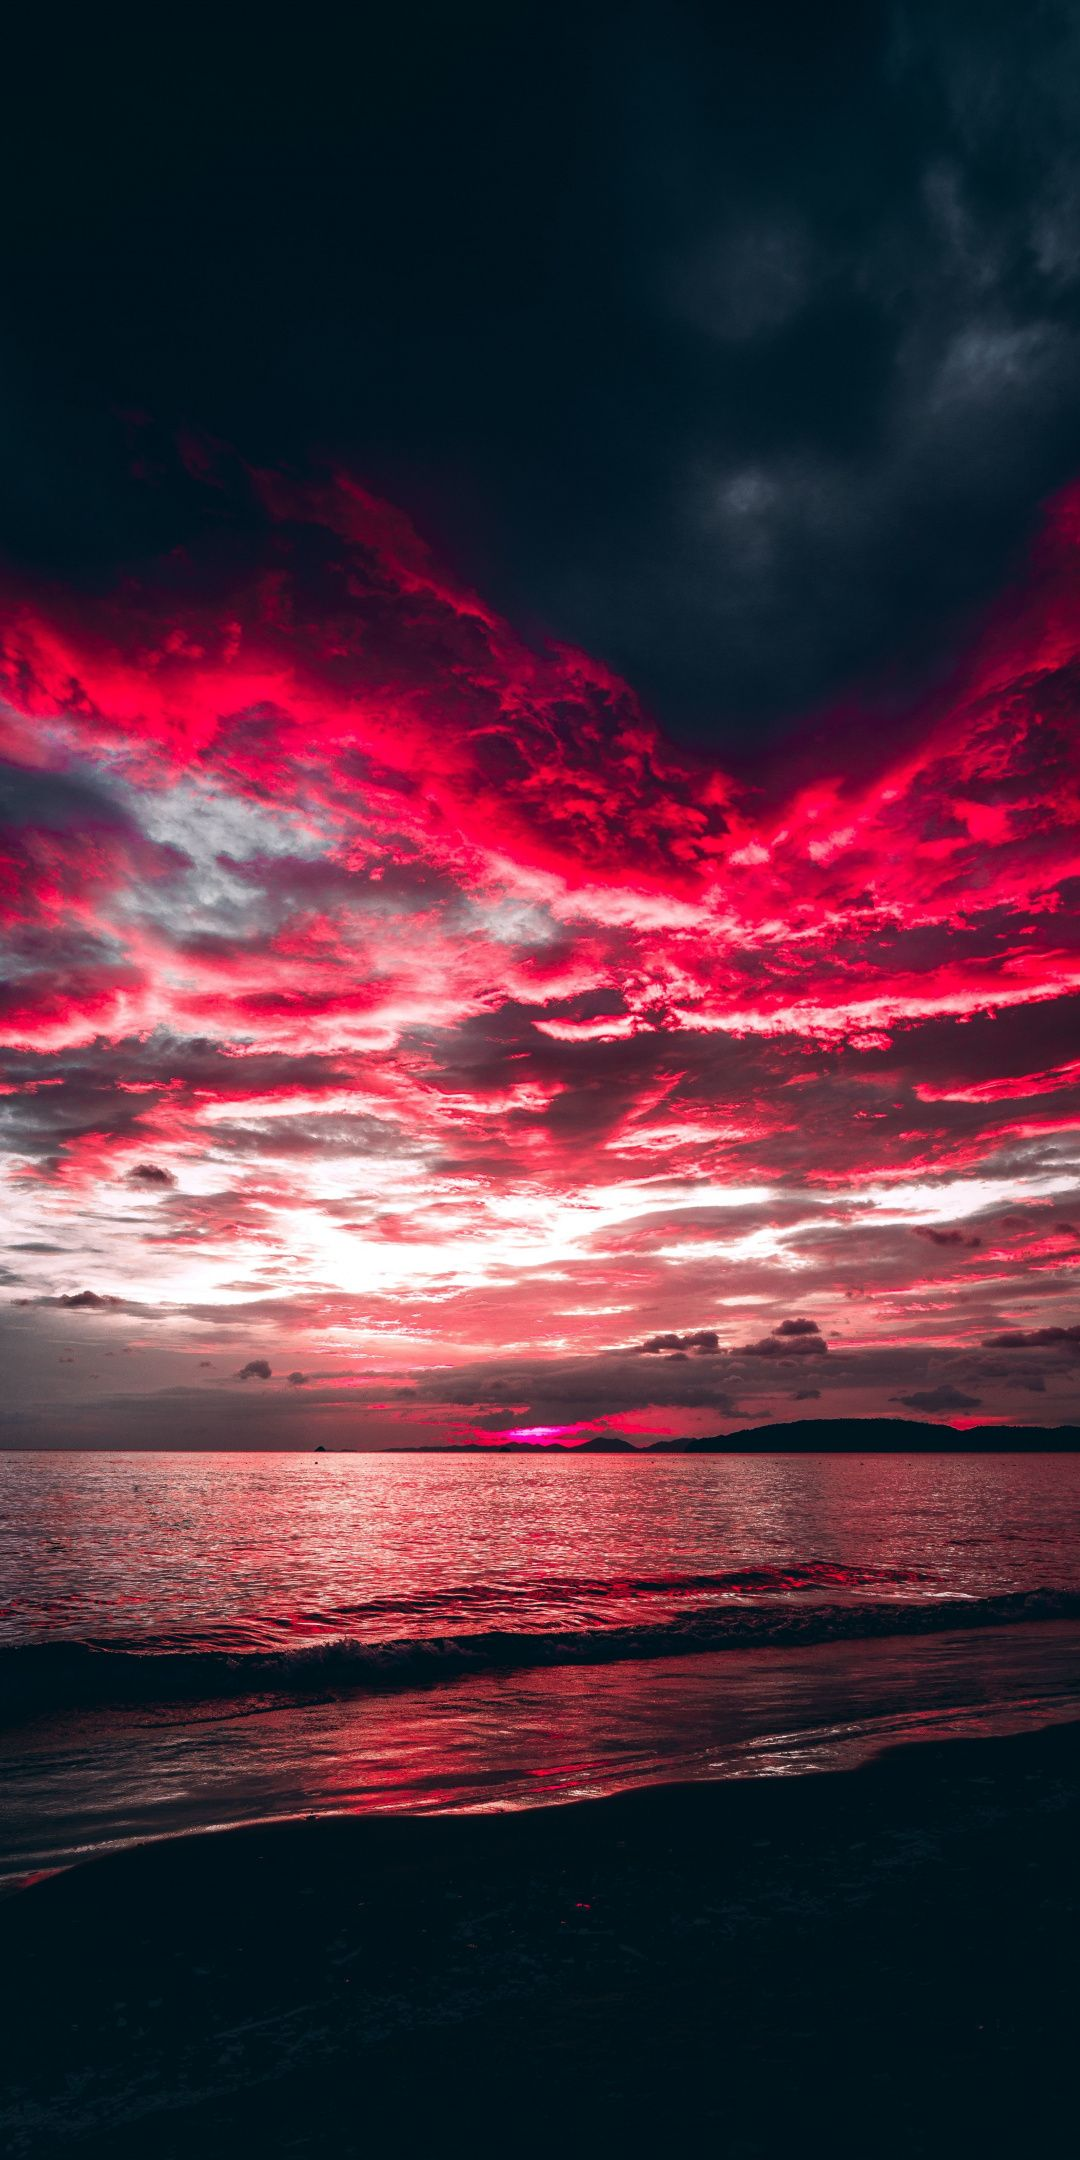 Sea Sunset Red Clouds Nature 1080x2160 Wallpaper Maroon Aesthetic Sunset Wallpaper Aesthetic Photography Nature